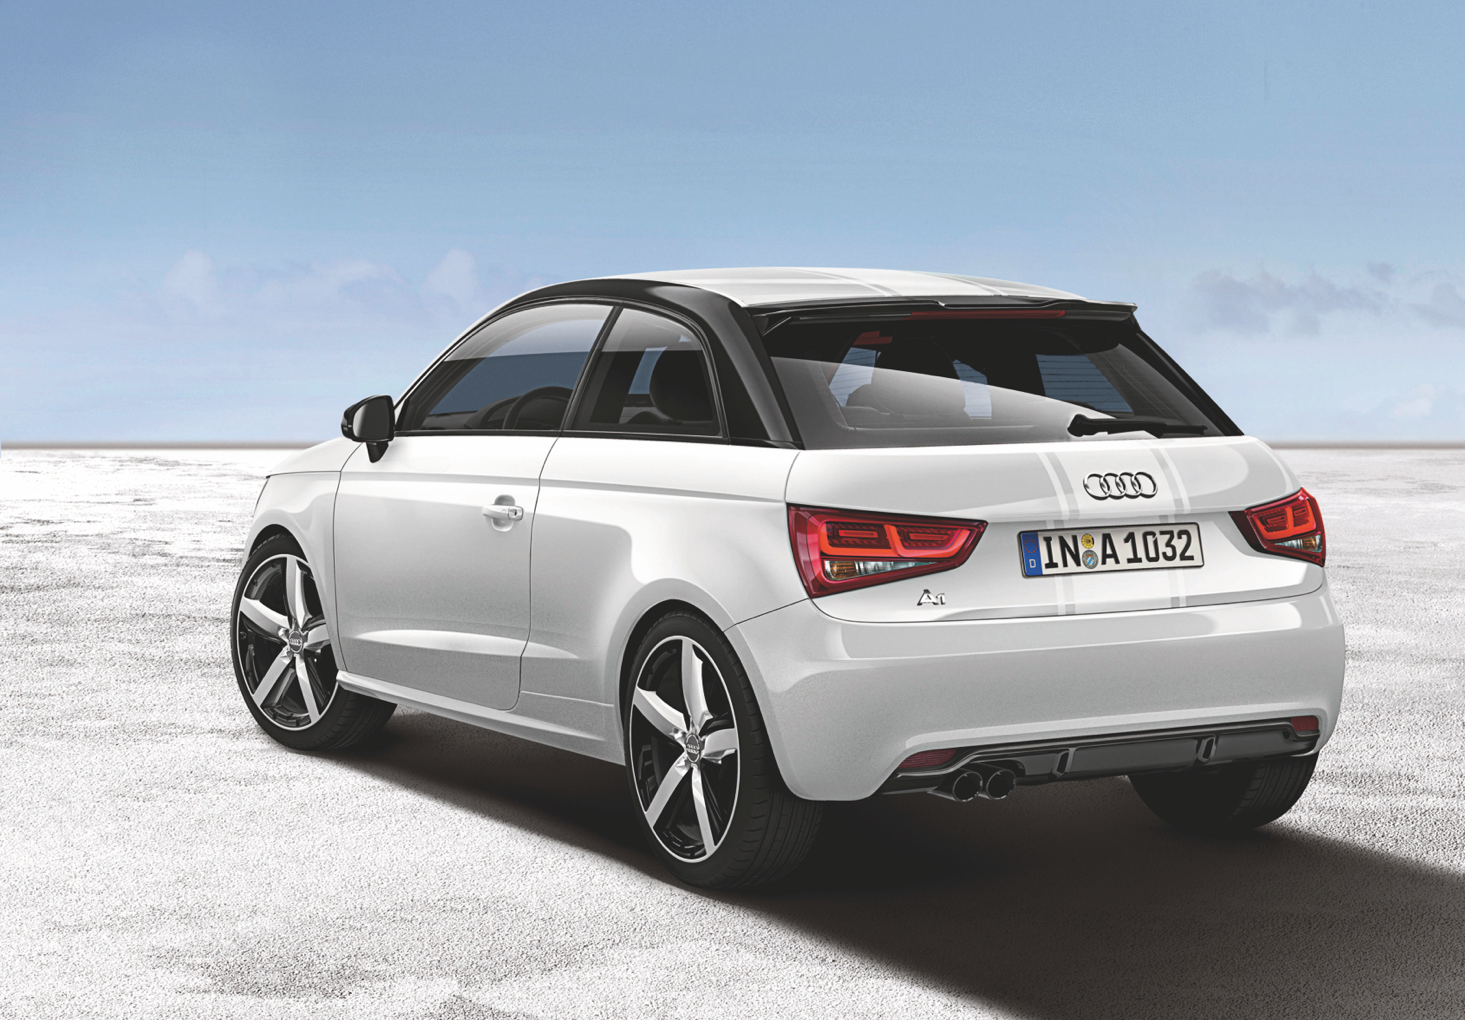 Audi Sub A1 Urban Car S Prototype Readying To Launch At Paris Motor